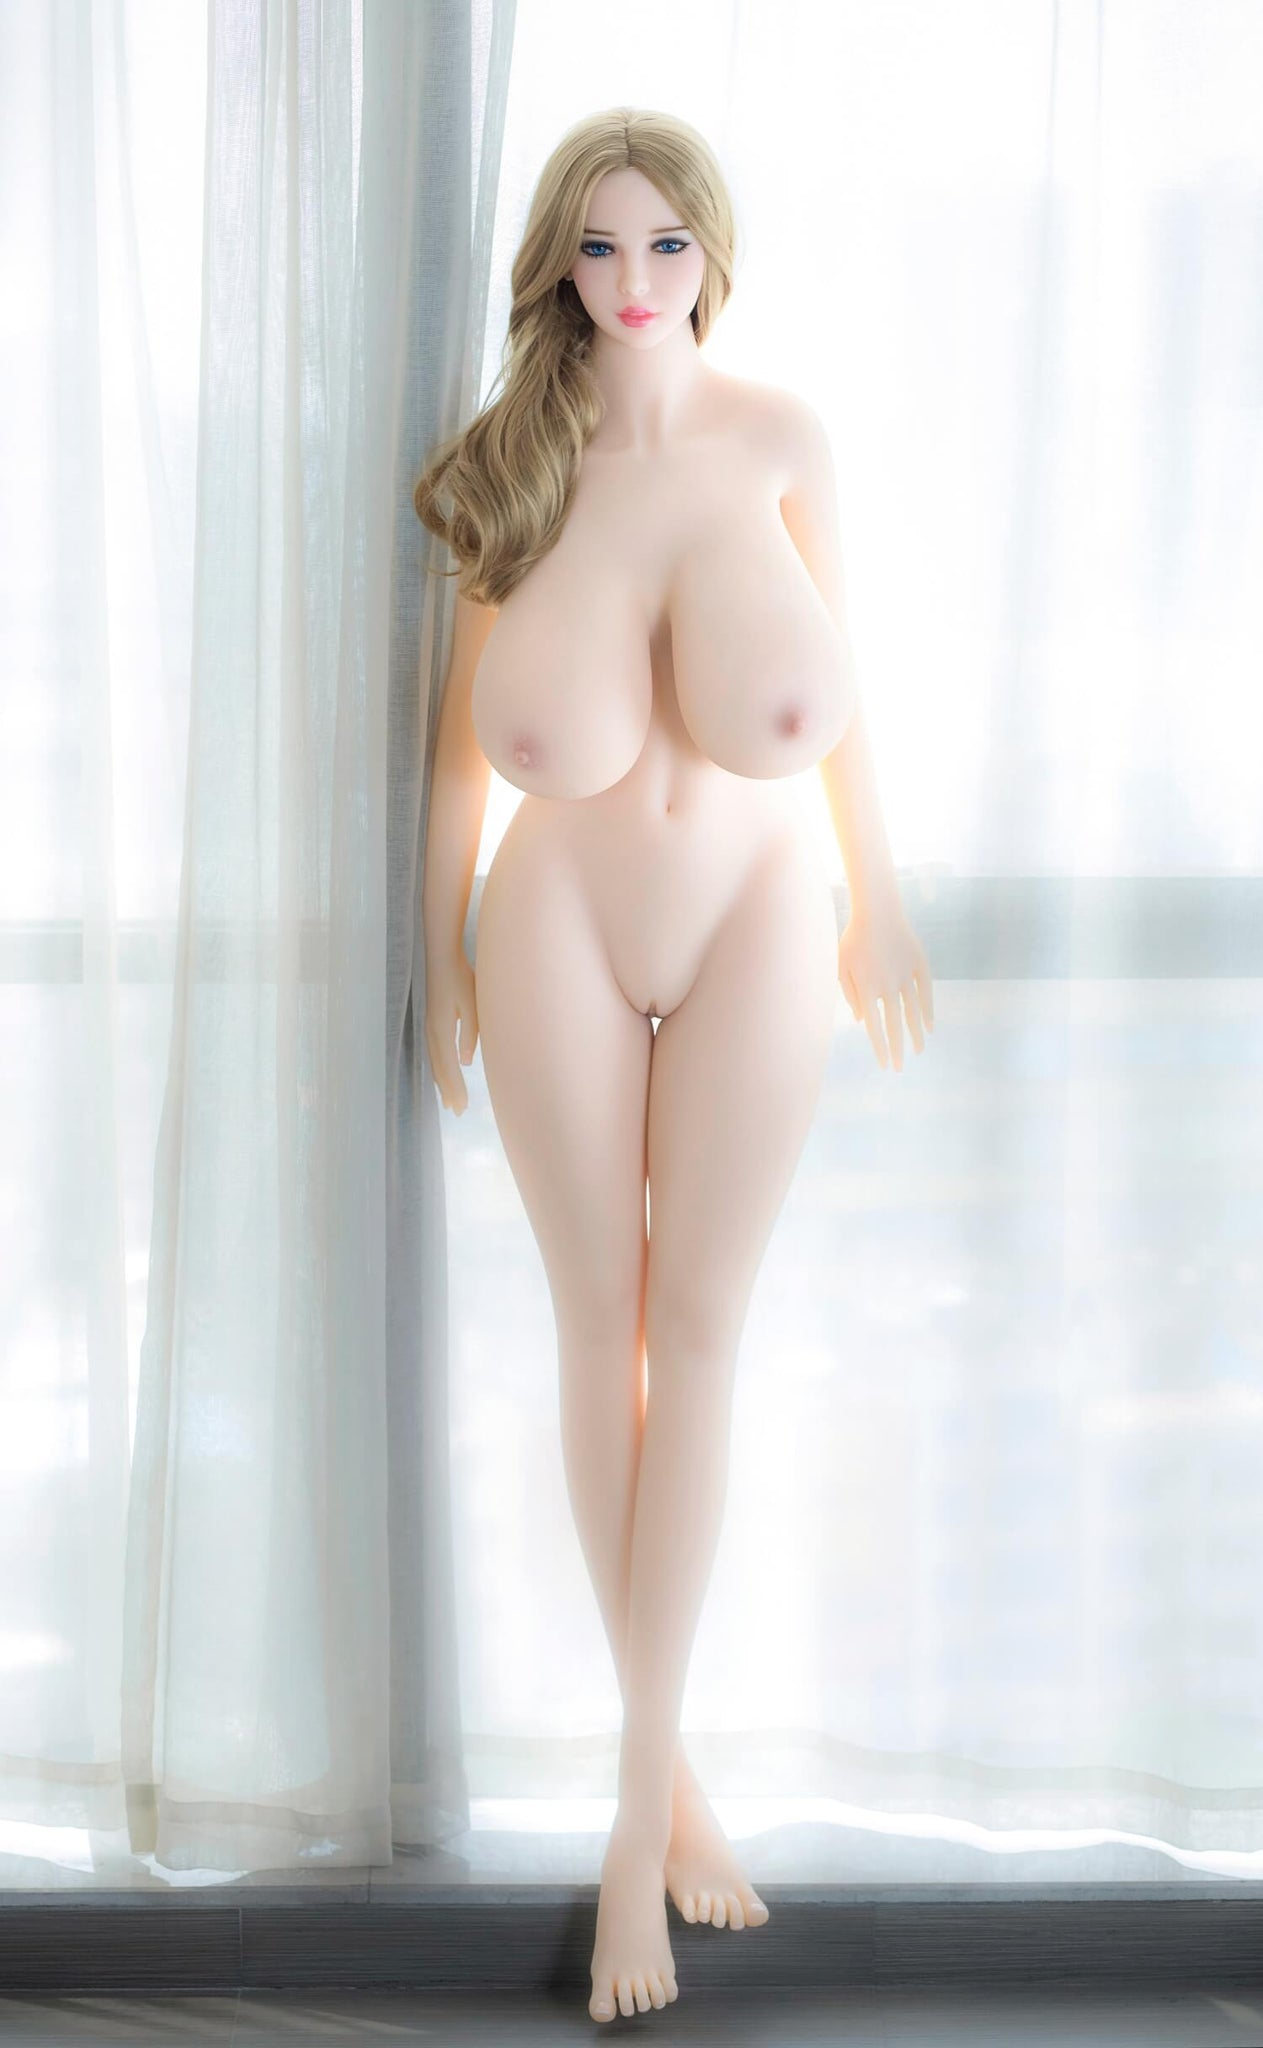 Eileen Biggest Papaya Breast Sex Doll - Cheap Sexy Real Sex Dolls Here